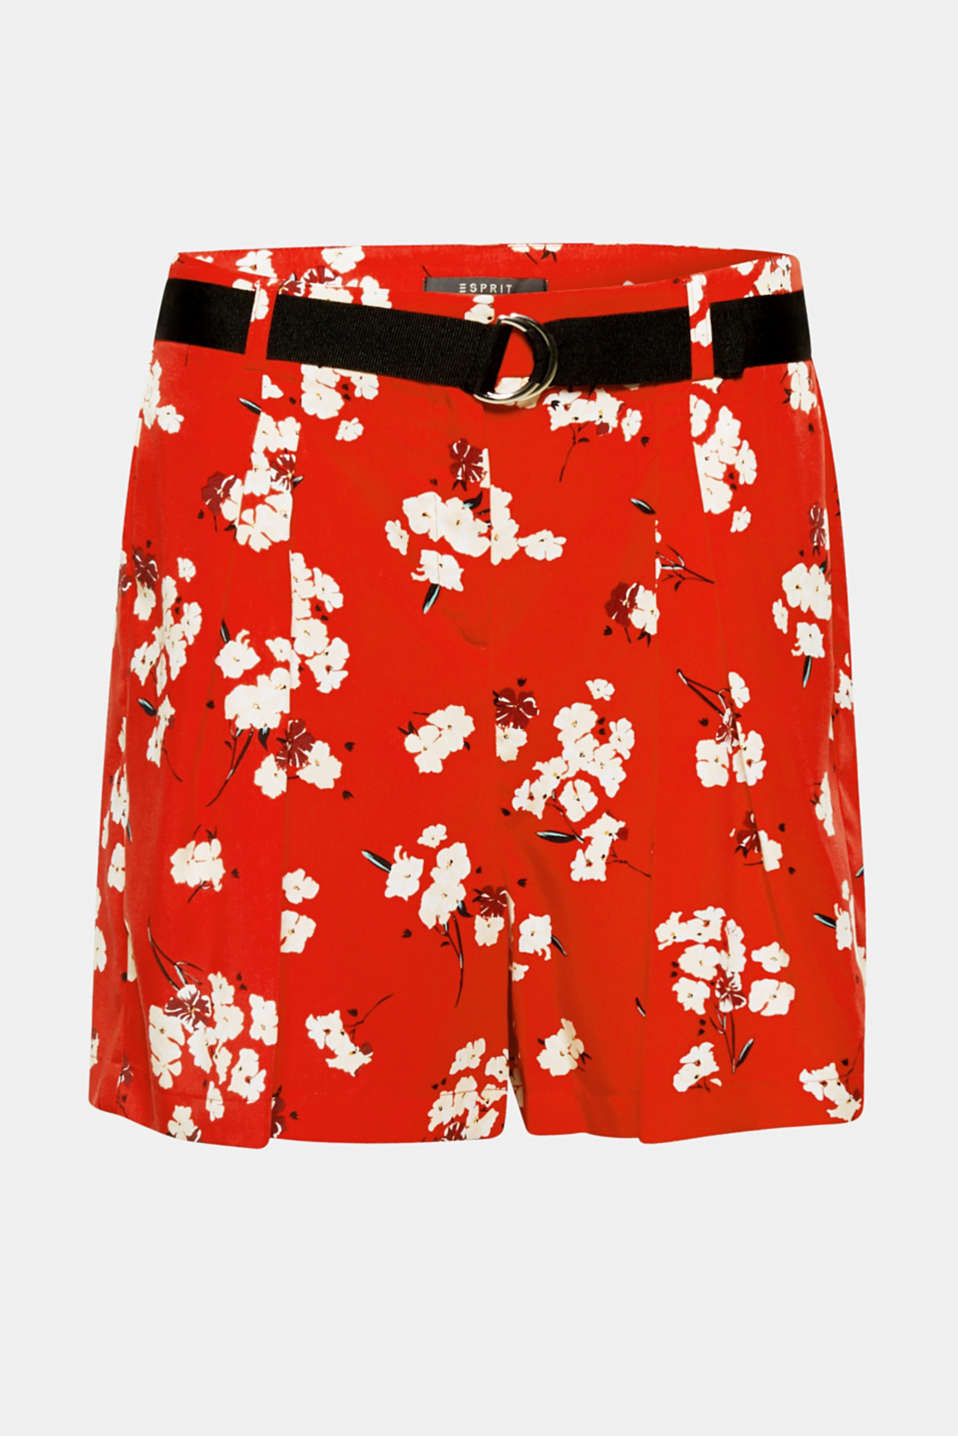 Half skirt, half shorts: Inset waist pleats create a fashionable expanse on this fashion piece, while the Oriental floral prints and grosgrain ribbon belt accentuate the summery vibe!